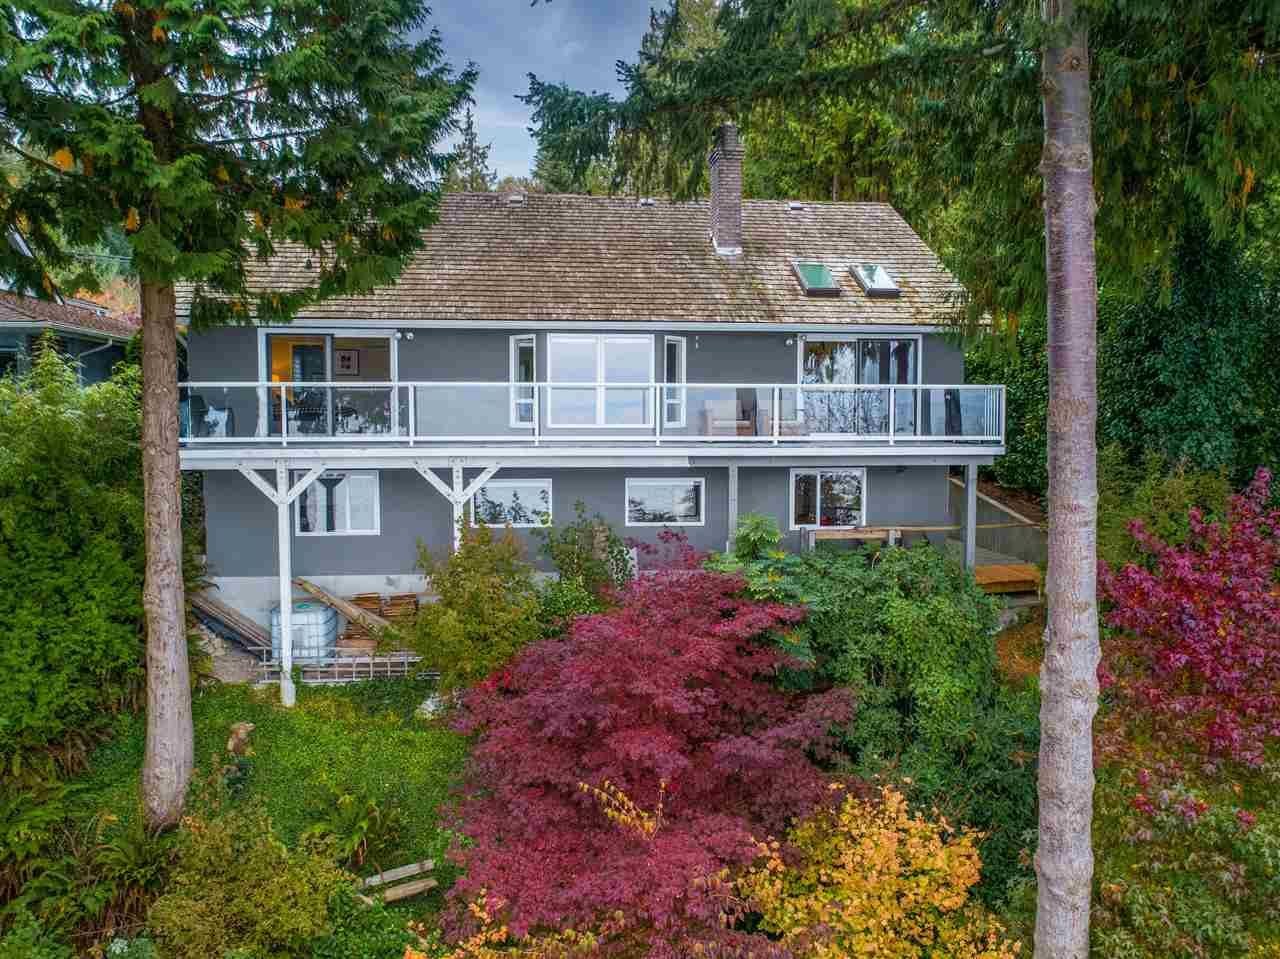 Main Photo: 3269 BEACH Avenue: Roberts Creek House for sale (Sunshine Coast)  : MLS®# R2511838